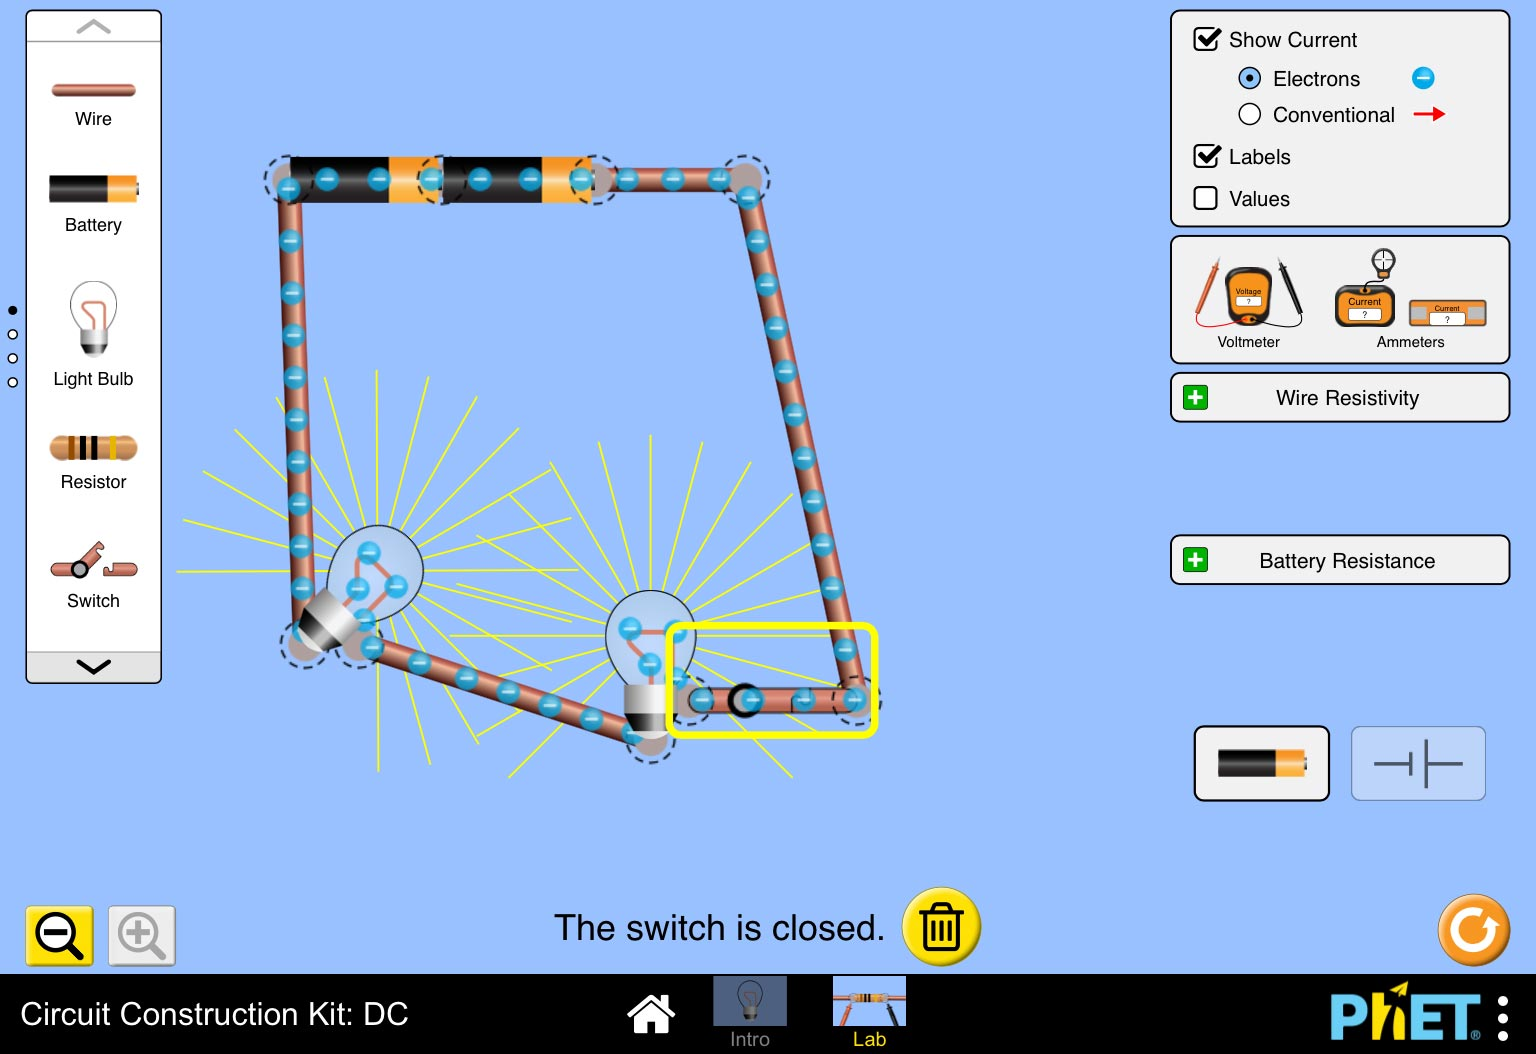 Circuit Construction Kit Simulation Allows Students To Build Phet Acdc From Now Works On Ipads Rh Whiteboardblog Co Uk